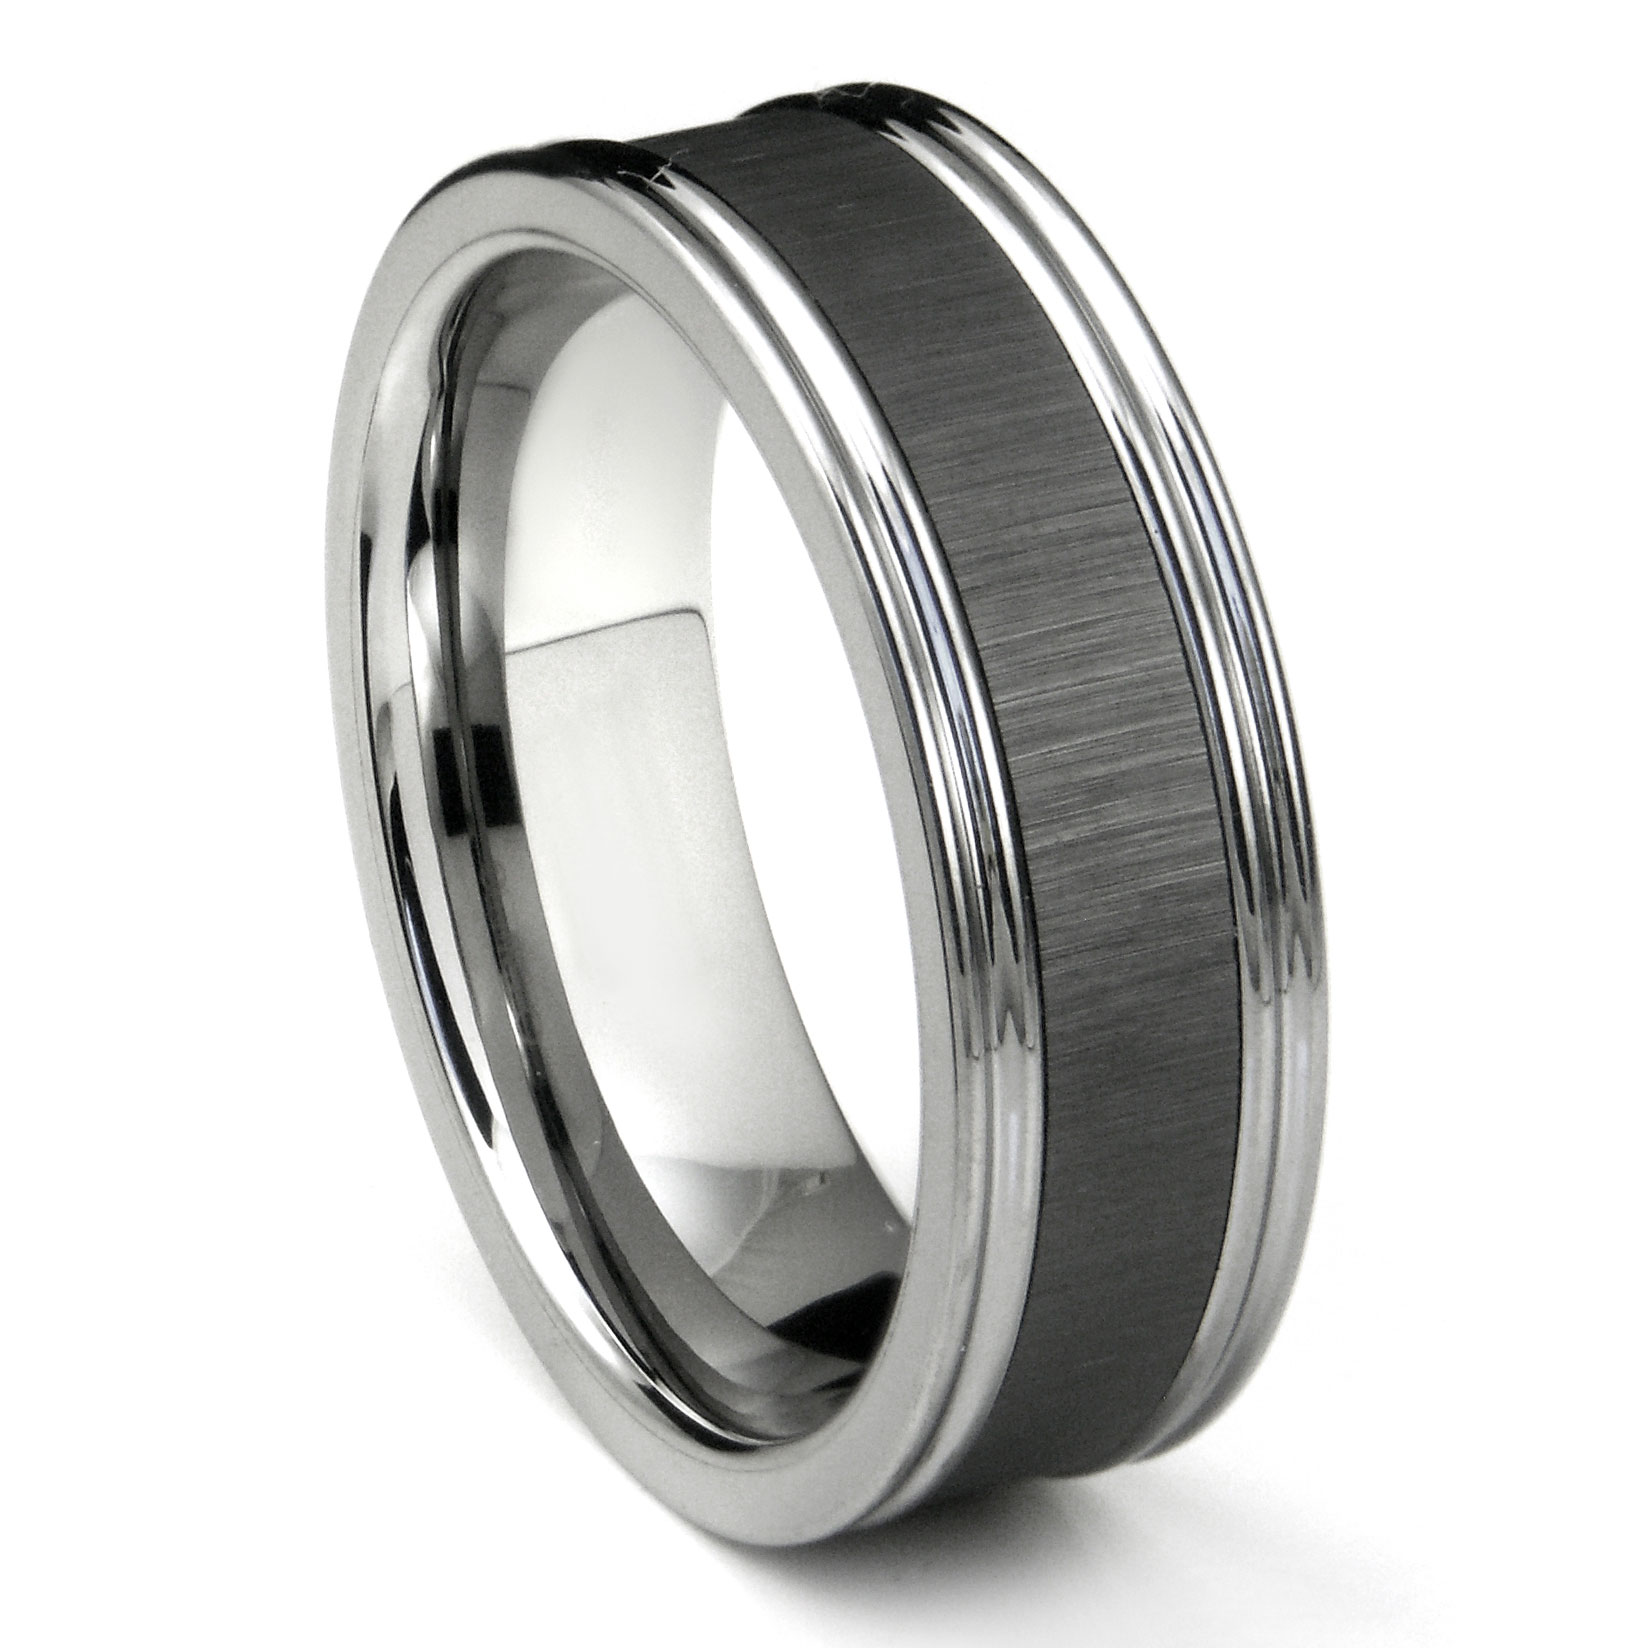 on band black bands stunning raised wedding engagement with handwork me carbide ring tungsten center lovely w rings within